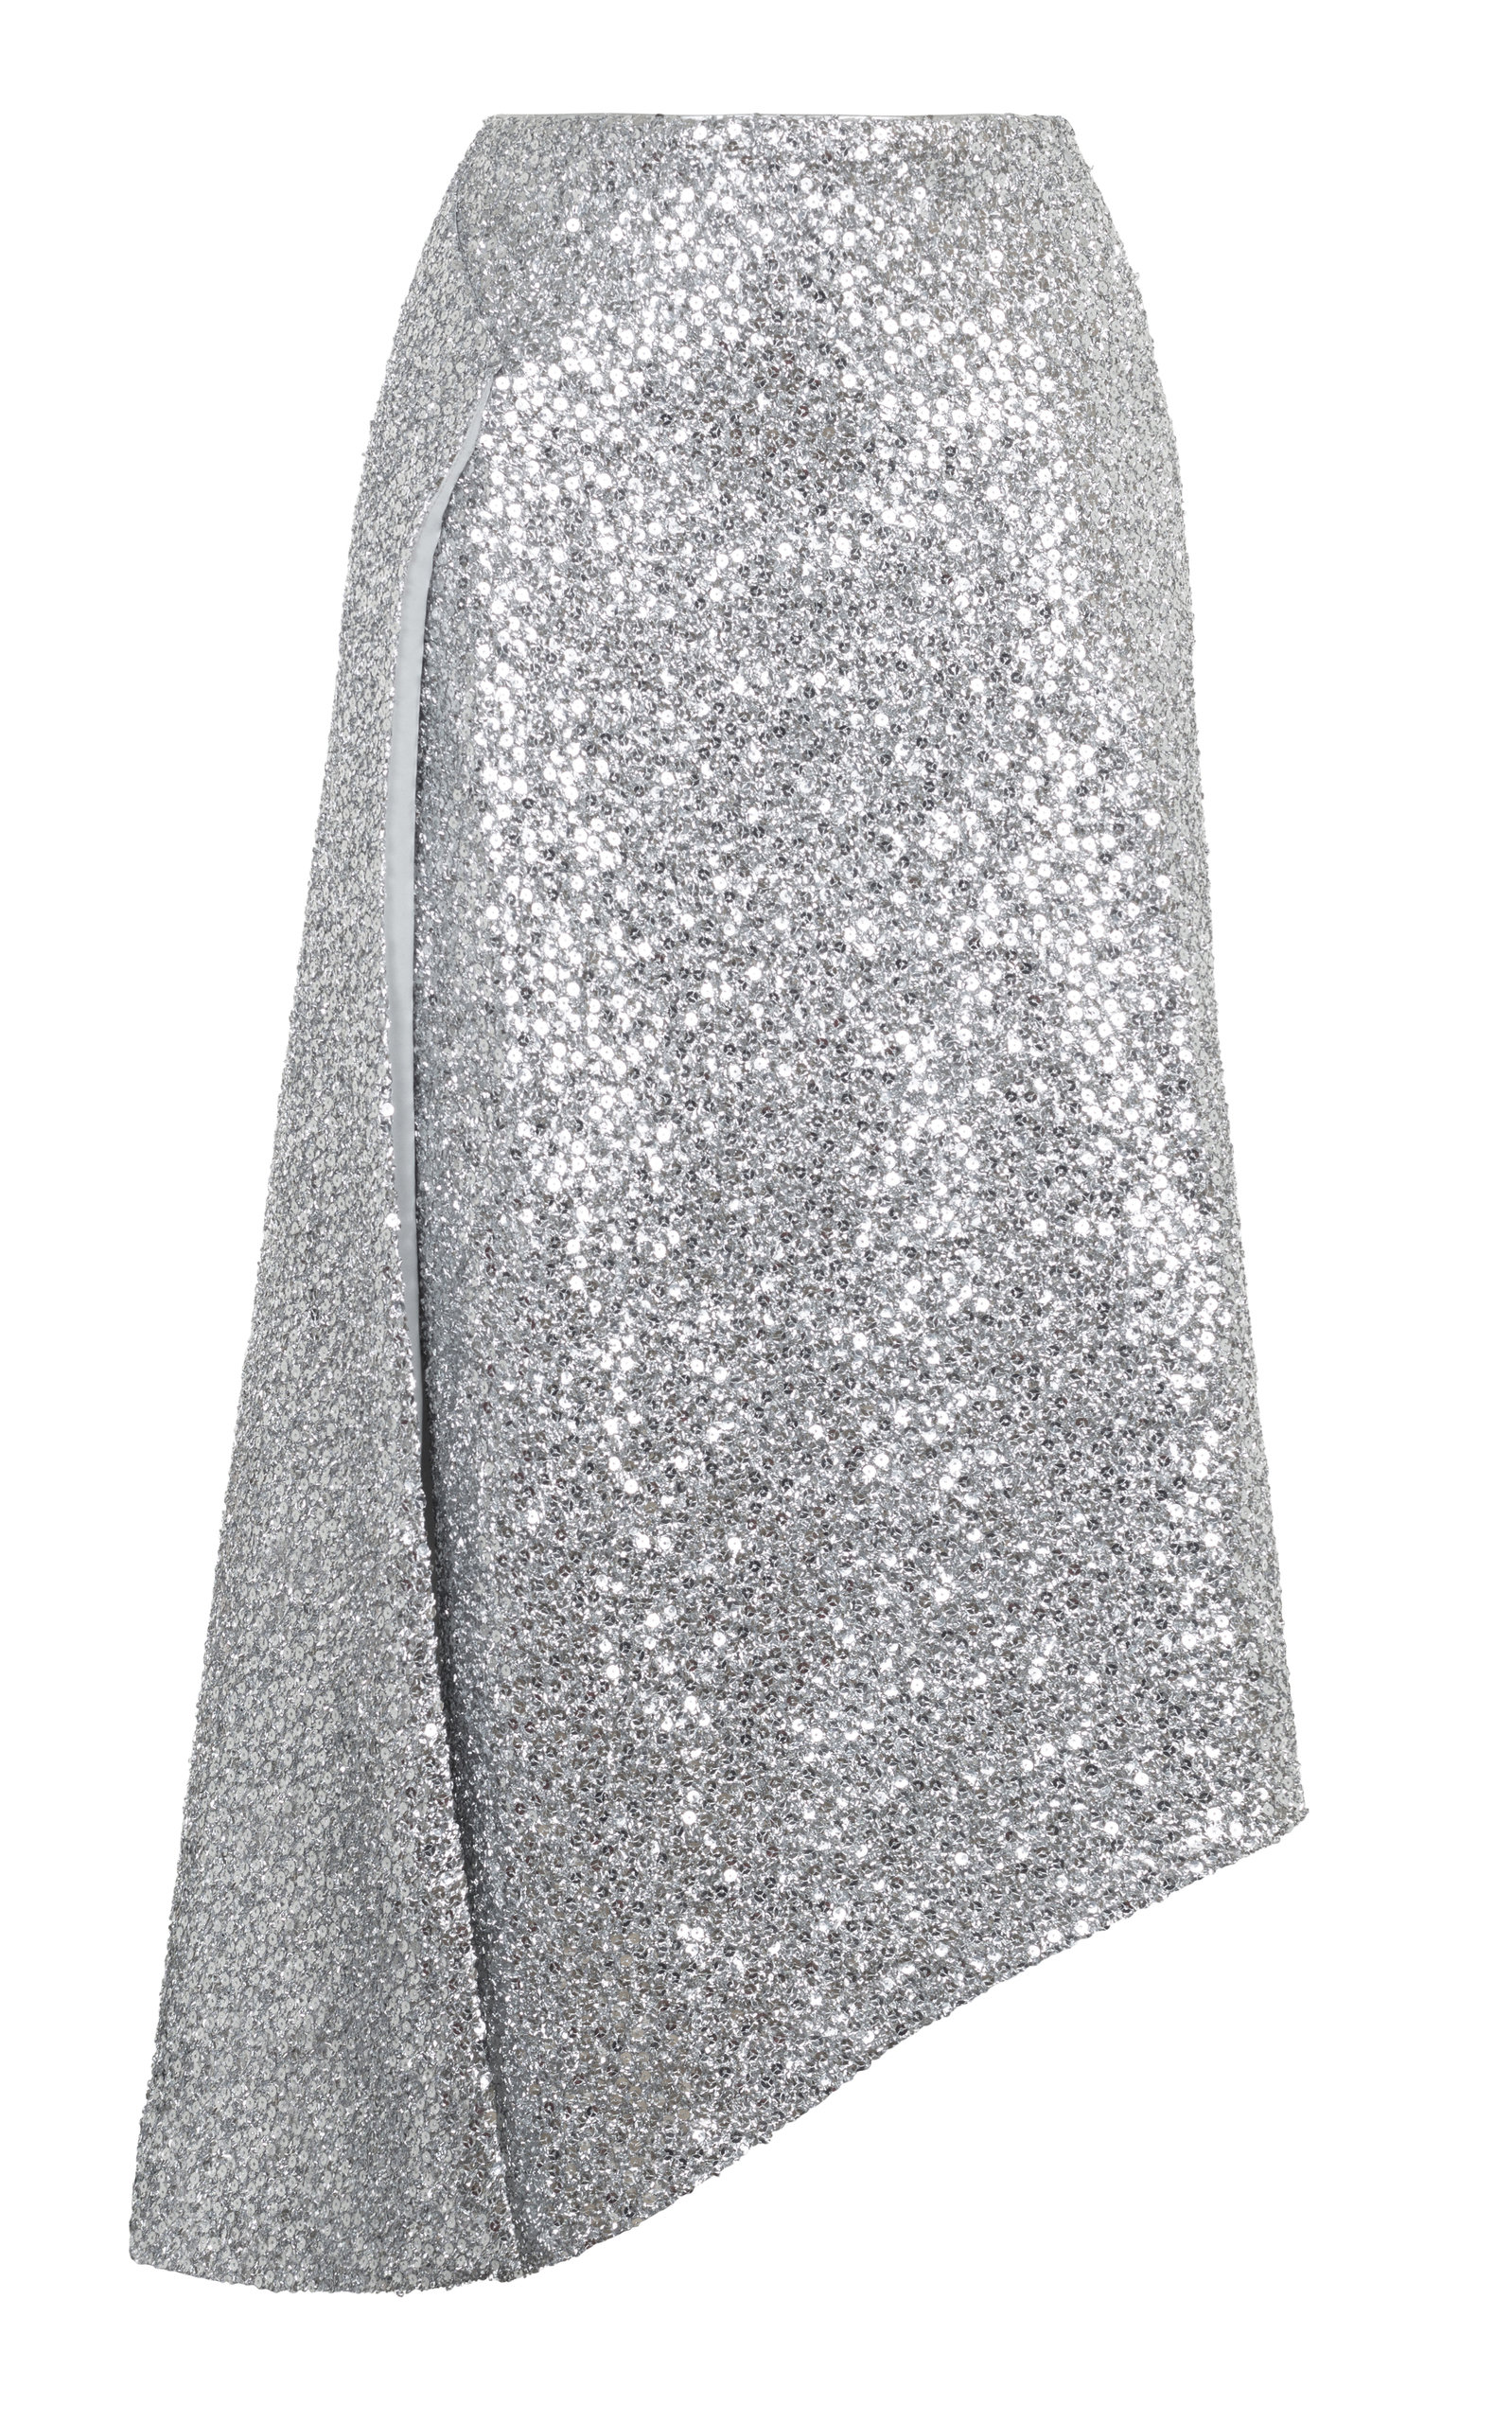 60% clearance discount coupon clearance prices Silver Sequin Midi Skirt